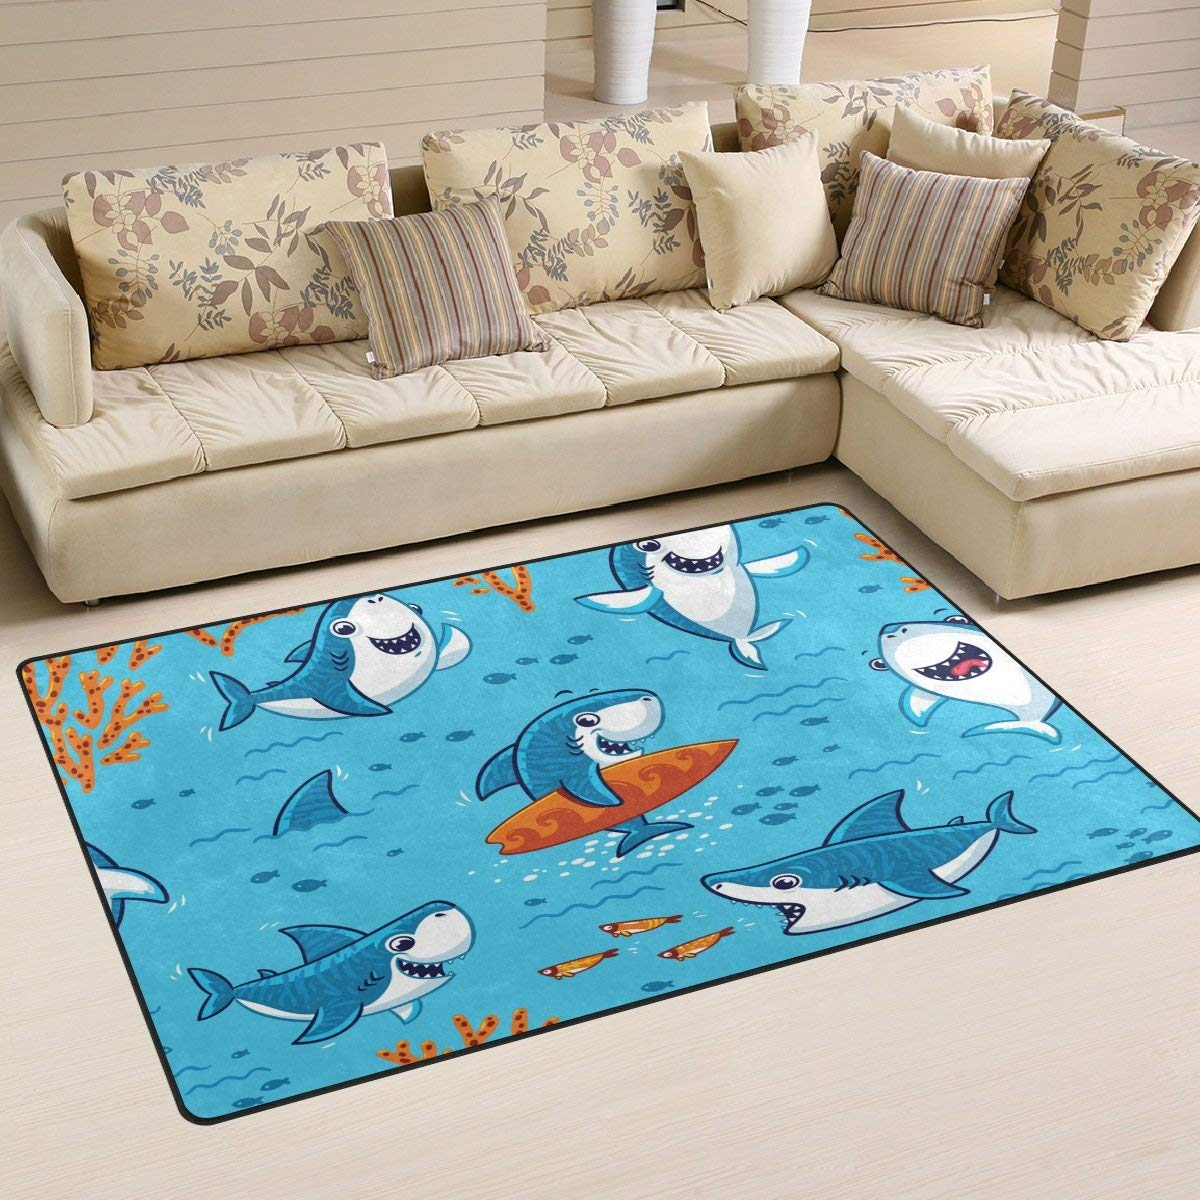 Terrific Amazon Com Frank Marner Cartoon Blue Sharks In The Ocean Beatyapartments Chair Design Images Beatyapartmentscom